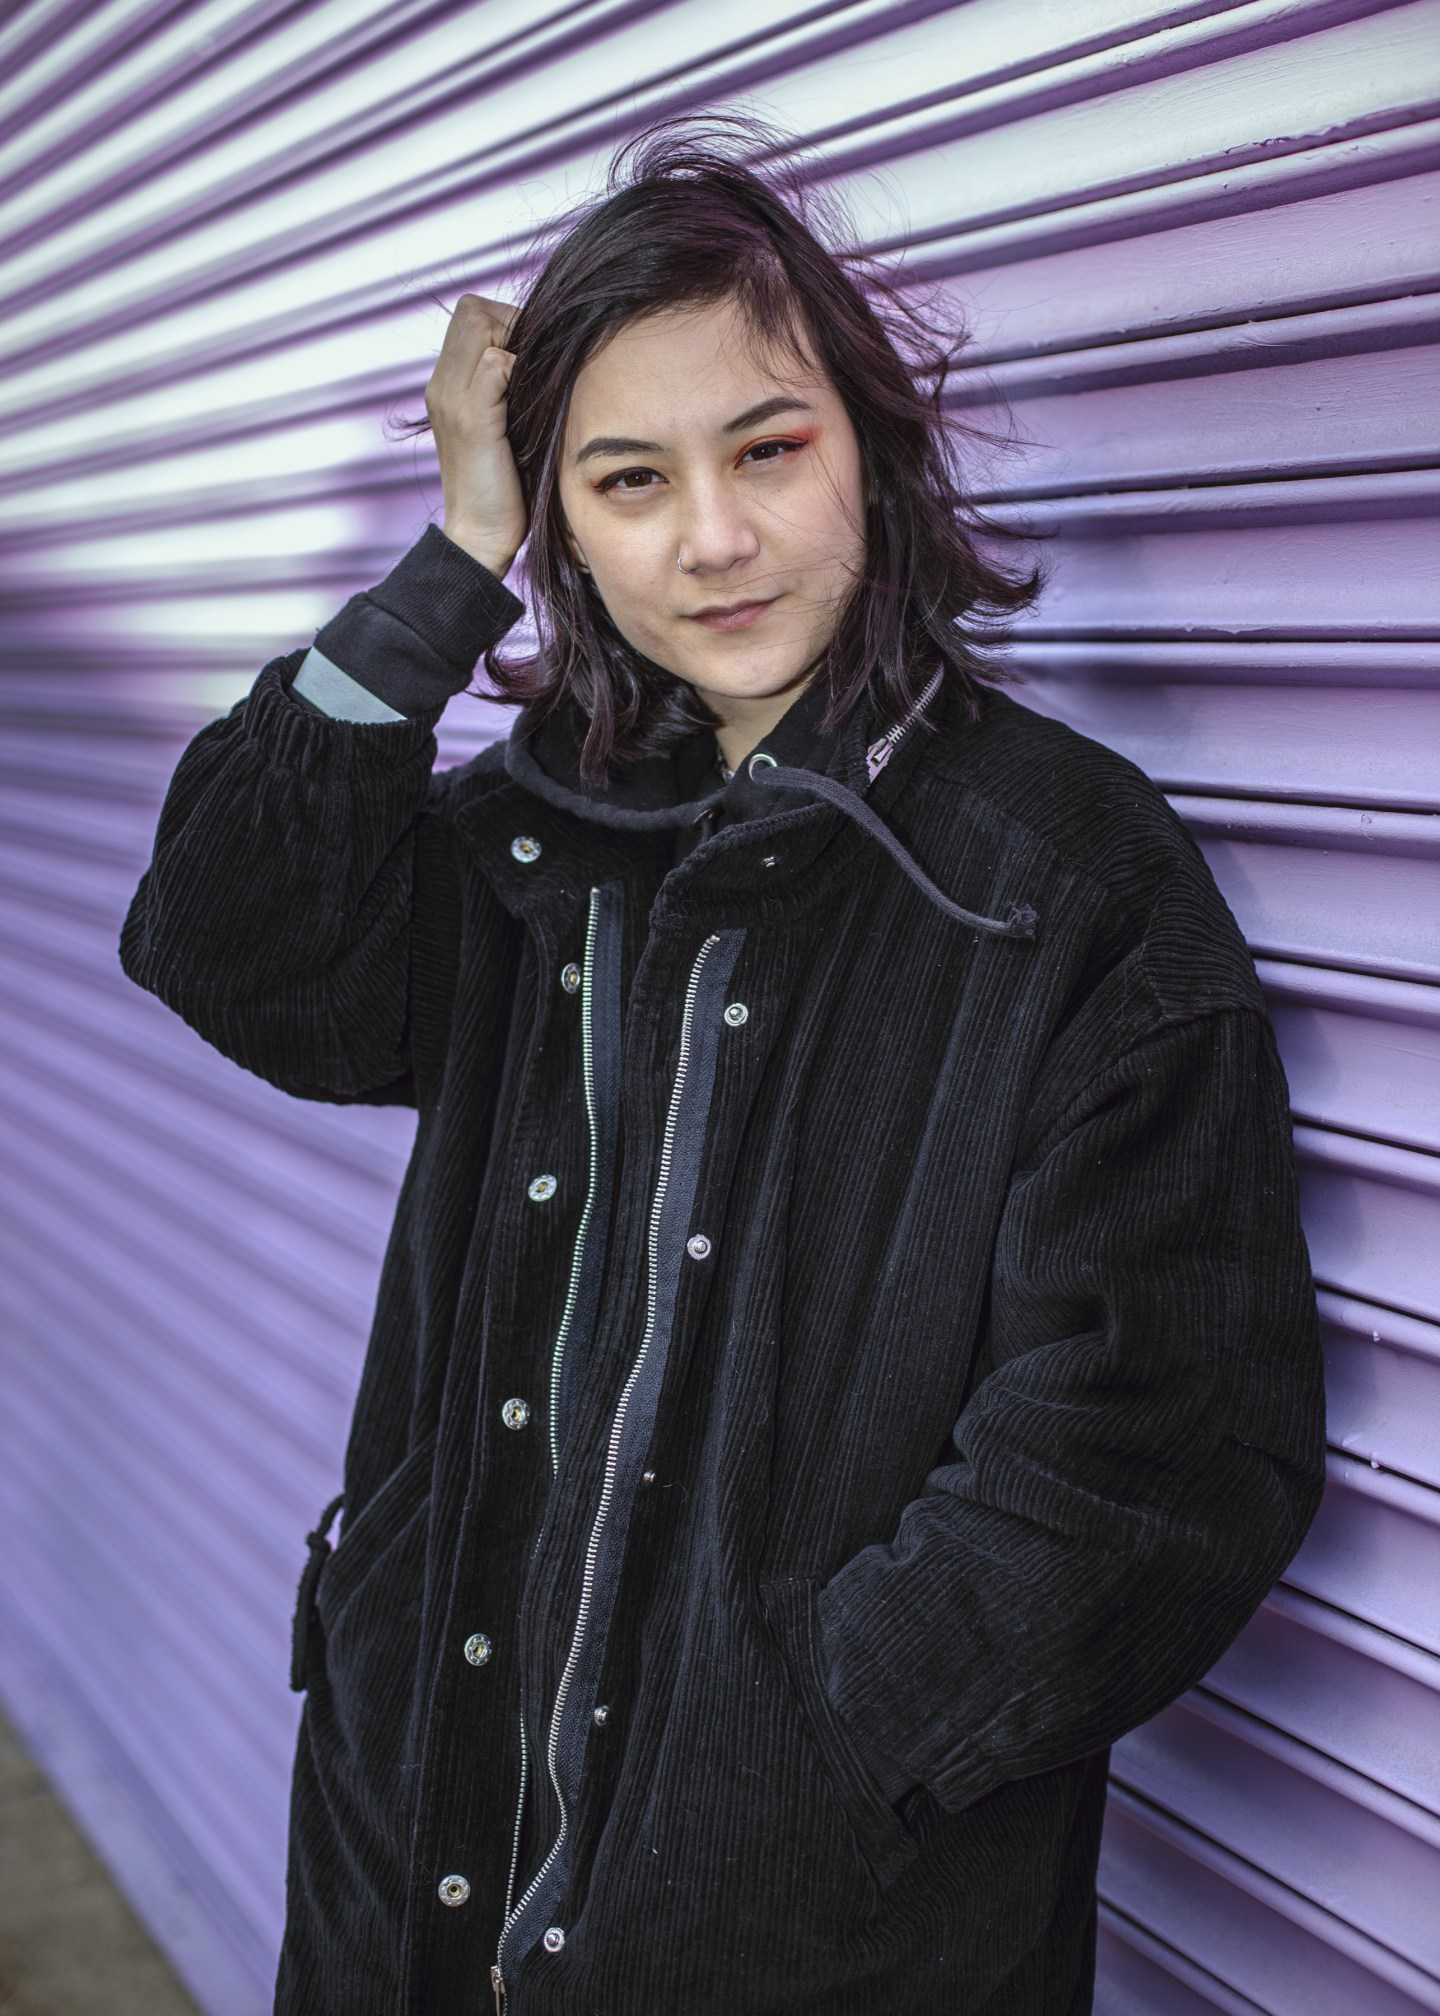 Japanese Breakfast had a good 2017 and if there's justice in the world she'll have a good 2018 too